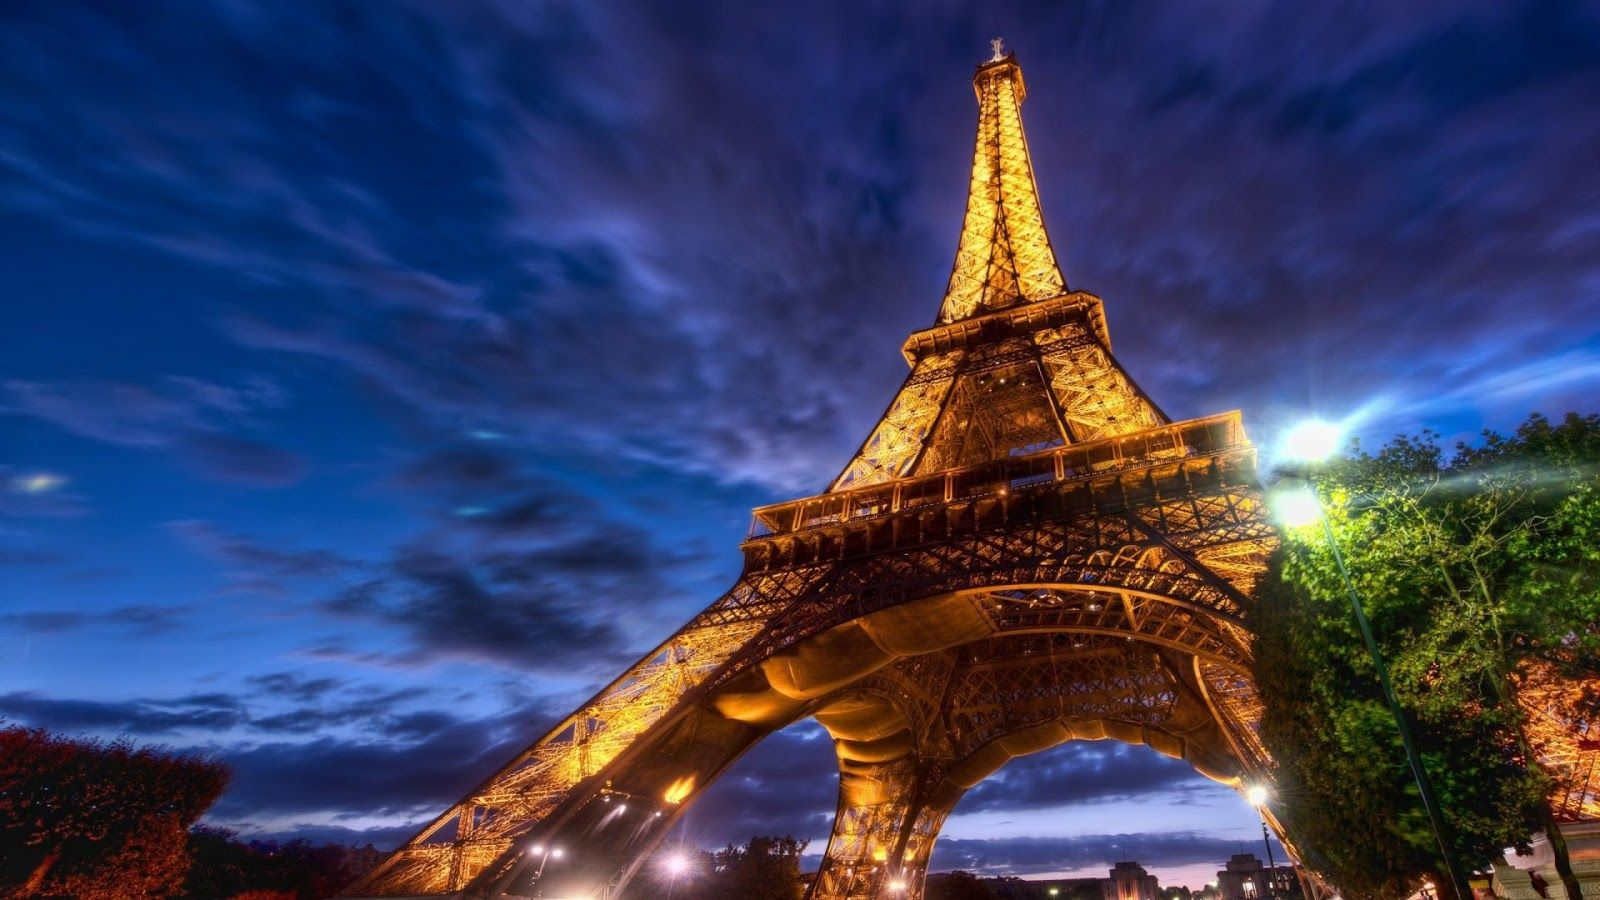 The Tower Is The Tallest Structure In Paris And The Most Visited